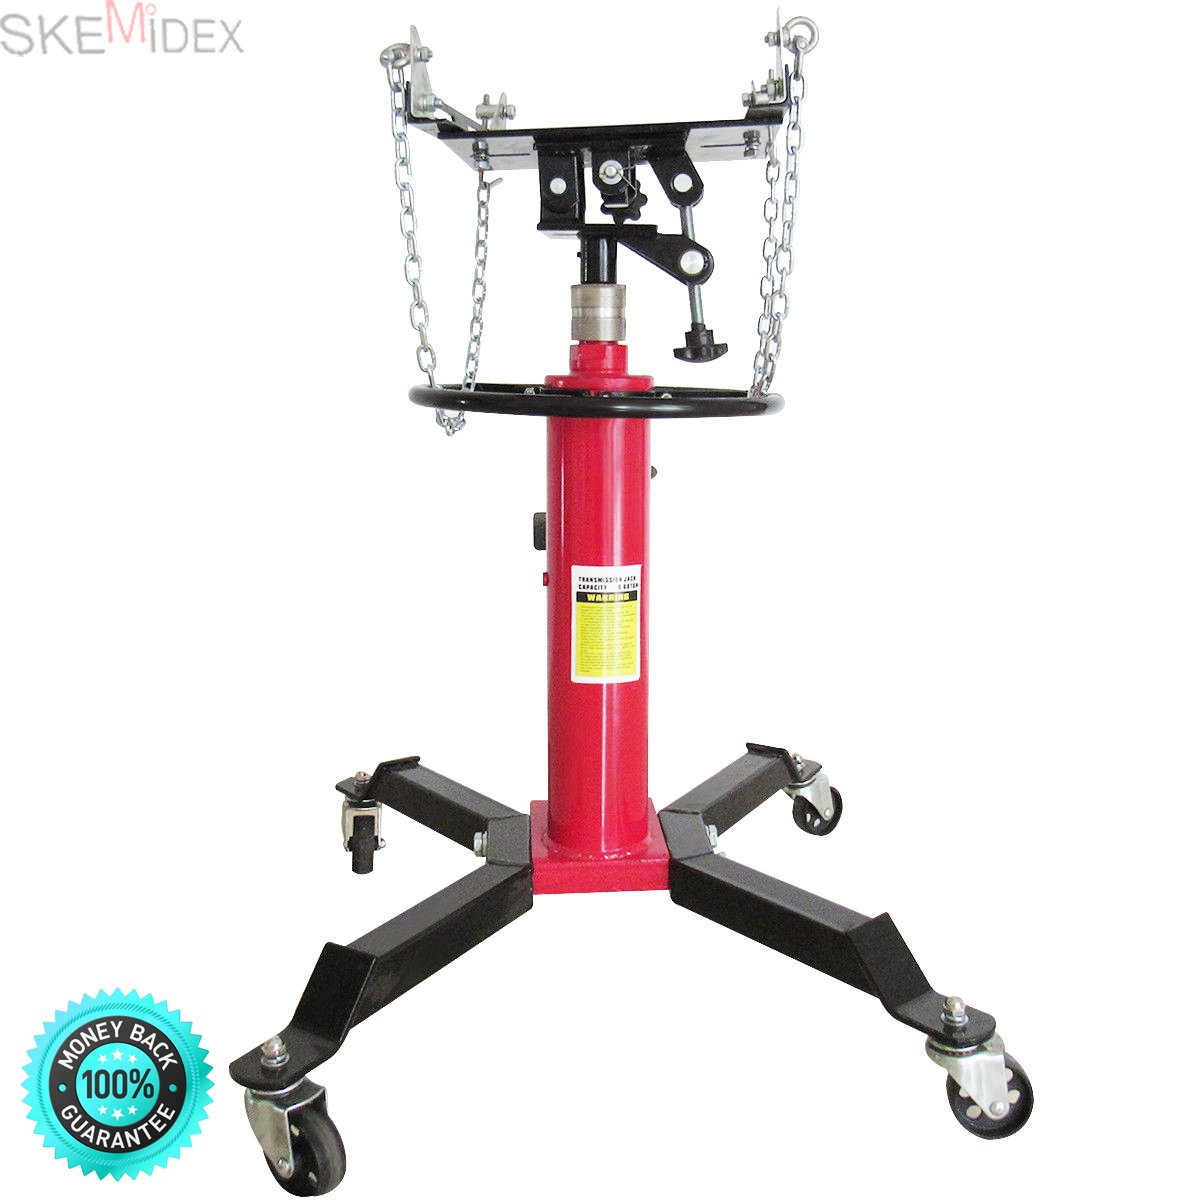 SKEMIDEX---1500 LB 2 Stage Hydraulic Transmission Jack w/ 360° Swivel Wheels Lift Hoist And espresso machine portafilter And espresso machine part names And espresso machine filter basket